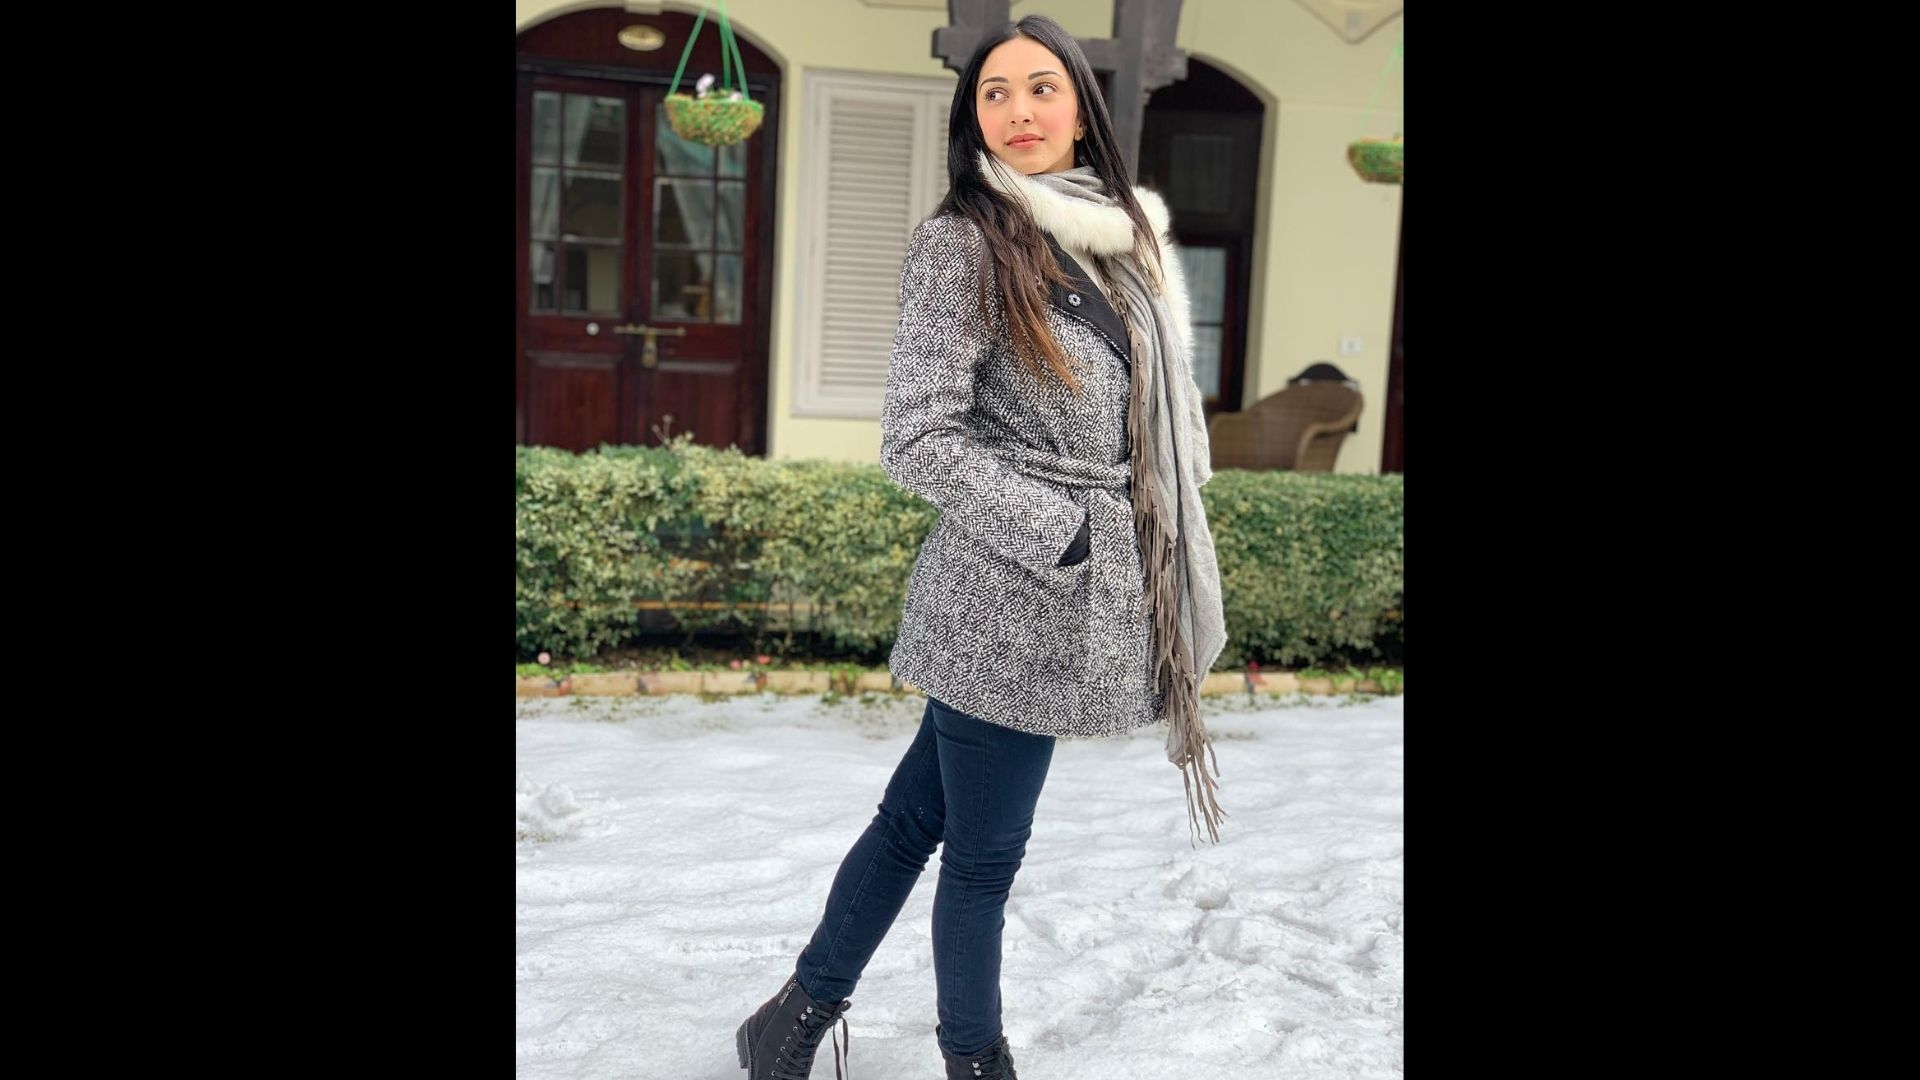 Kiara Advani Treats Fans With Boomerang Shot; Sets The Mood For Winter In Latest Clip